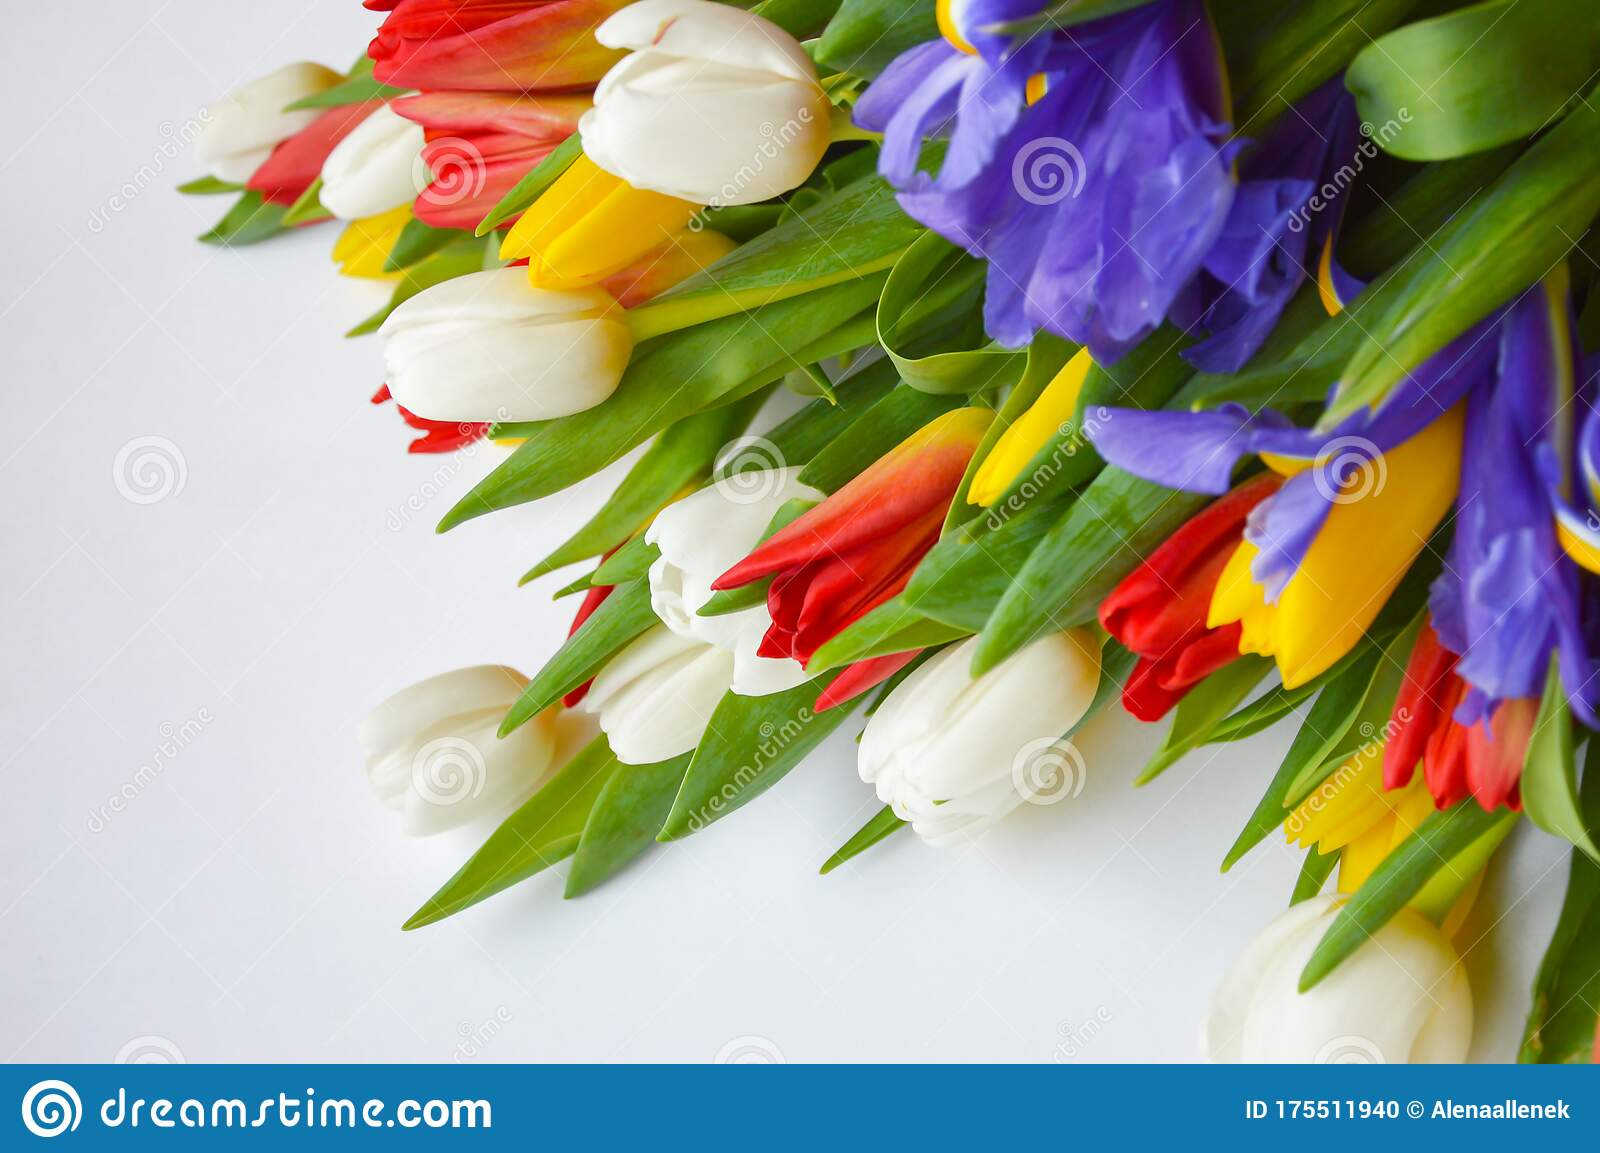 Bright Bouquet Of Tulips Flowers Are White Red Yellow And Blue Stock Photo Image Of Color Season 175511940